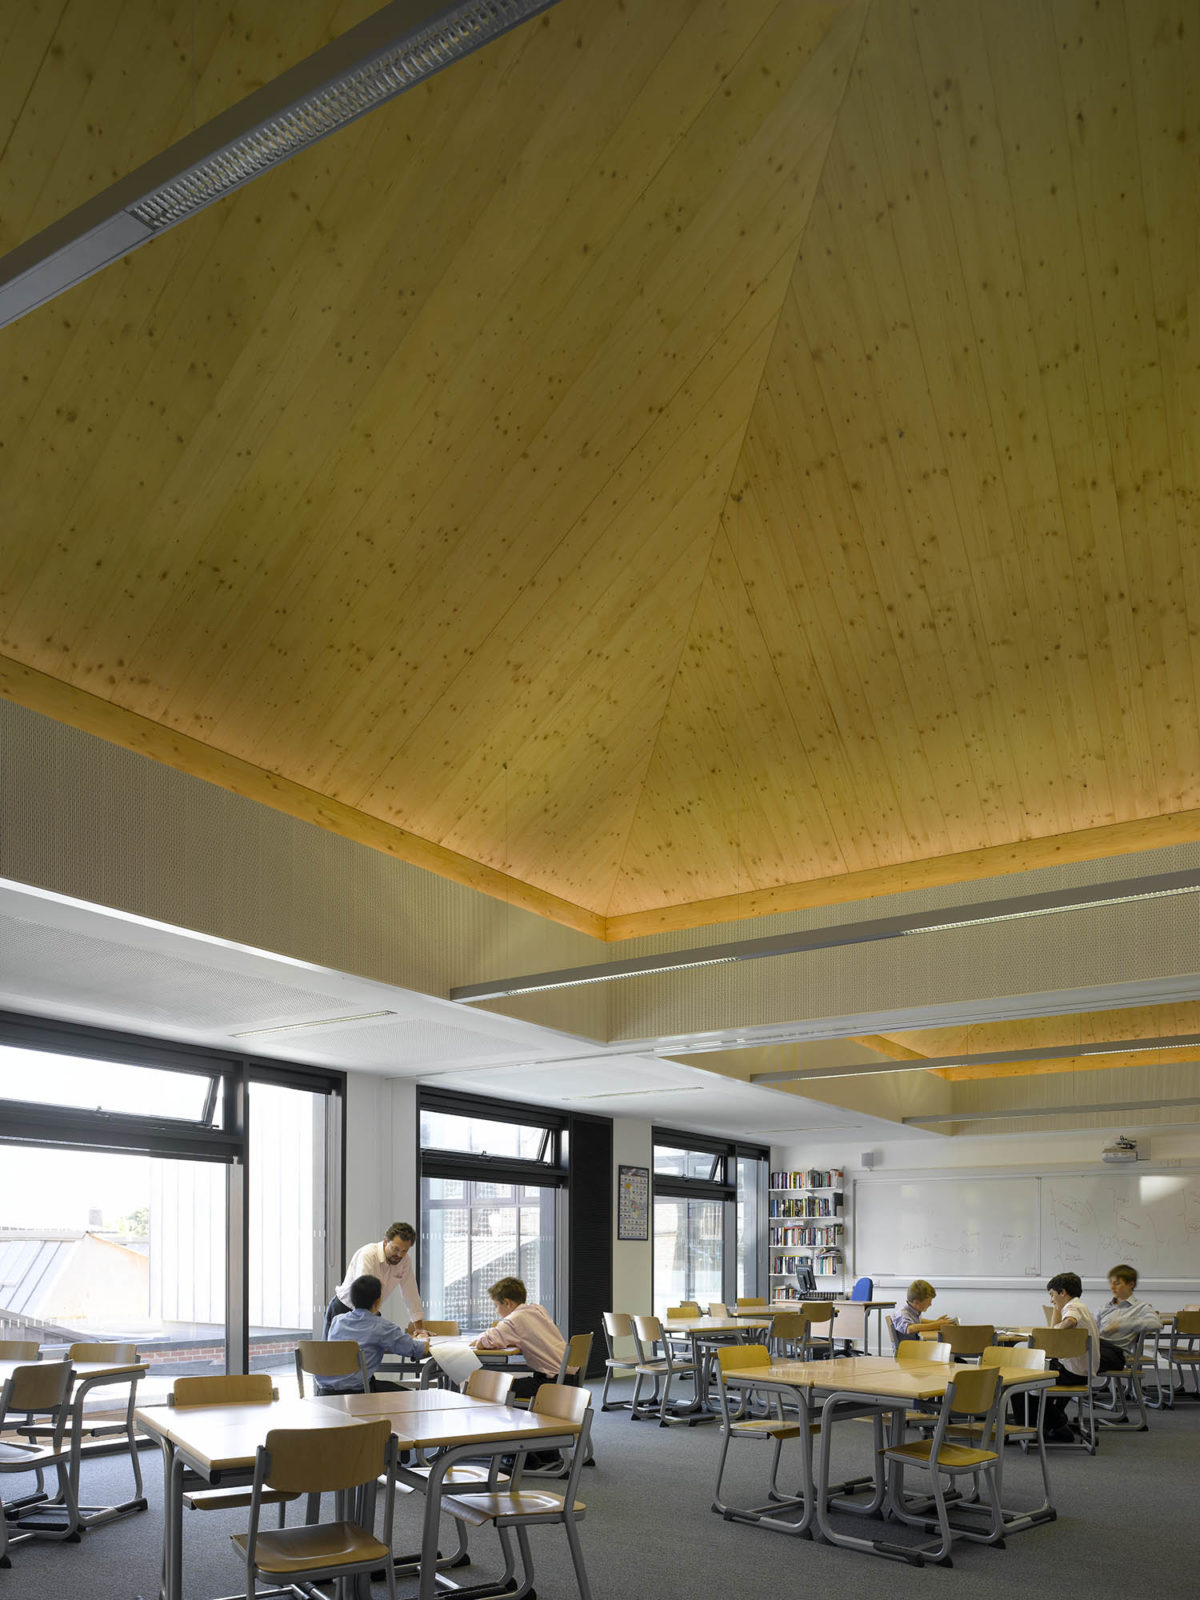 Design Engine's Radley College interior